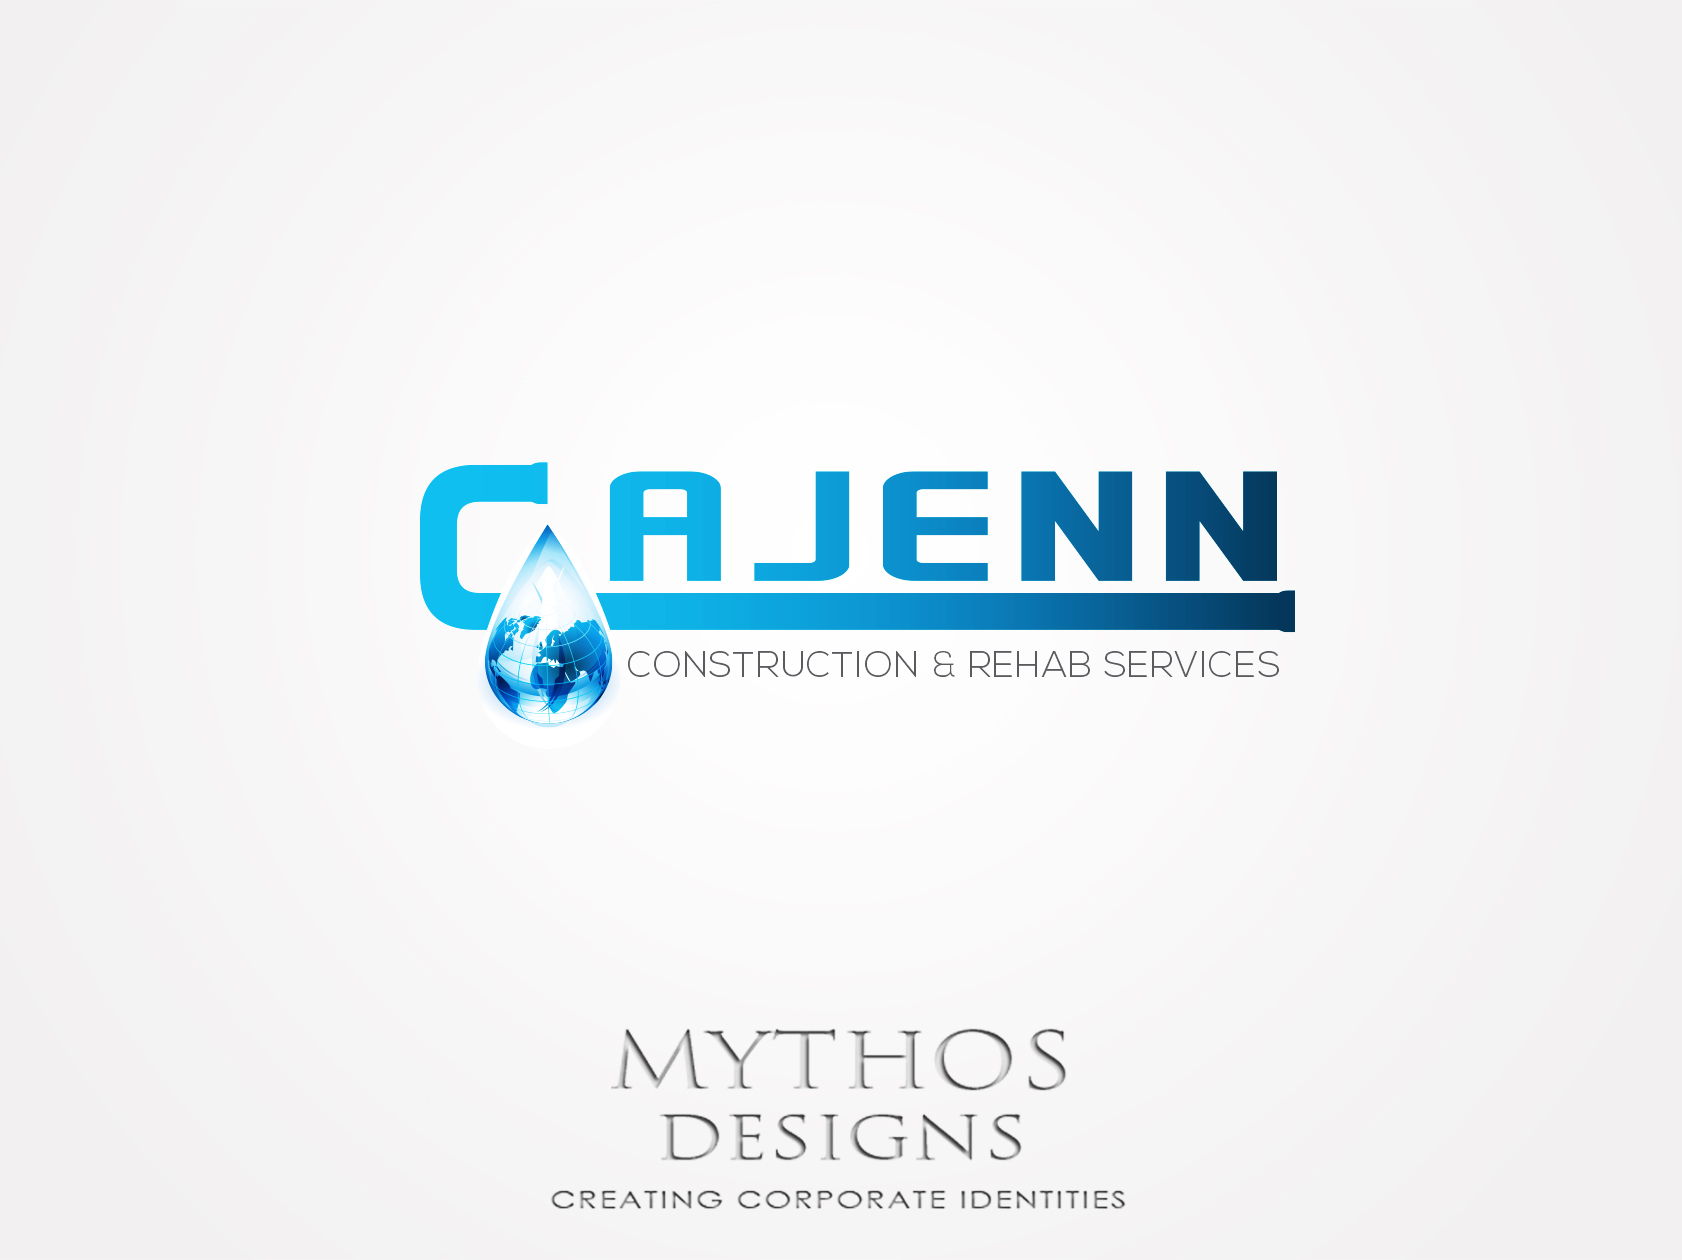 Logo Design by Mythos Designs - Entry No. 188 in the Logo Design Contest New Logo Design for CaJenn Construction & Rehab Services.